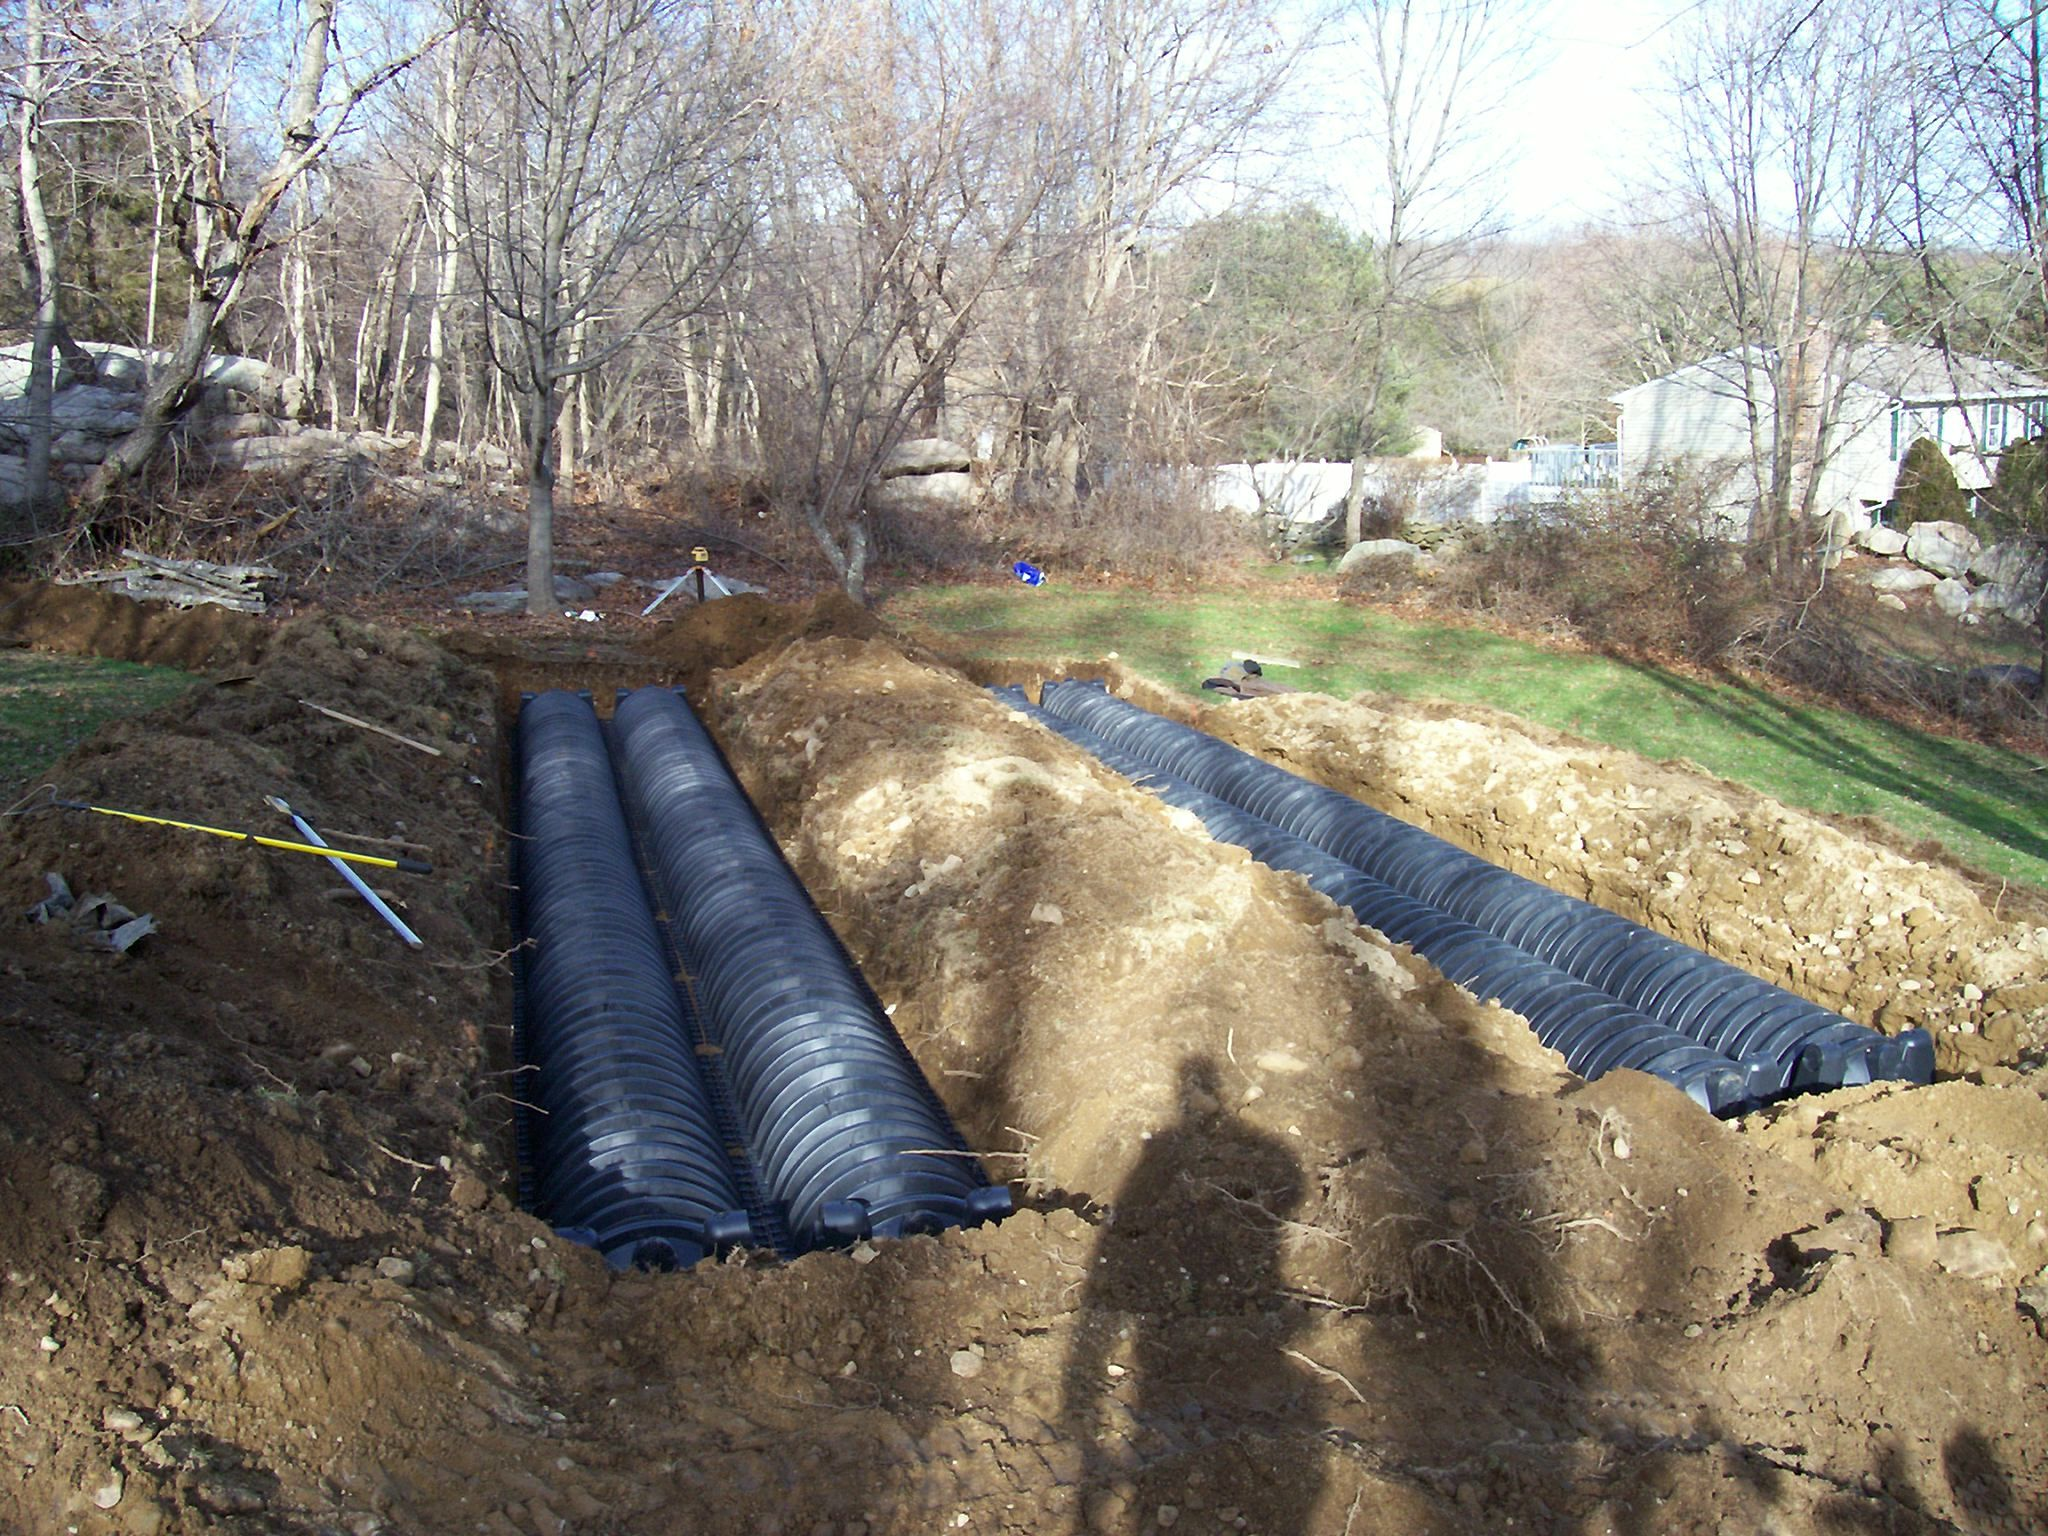 What are some tips for drainfield repair?